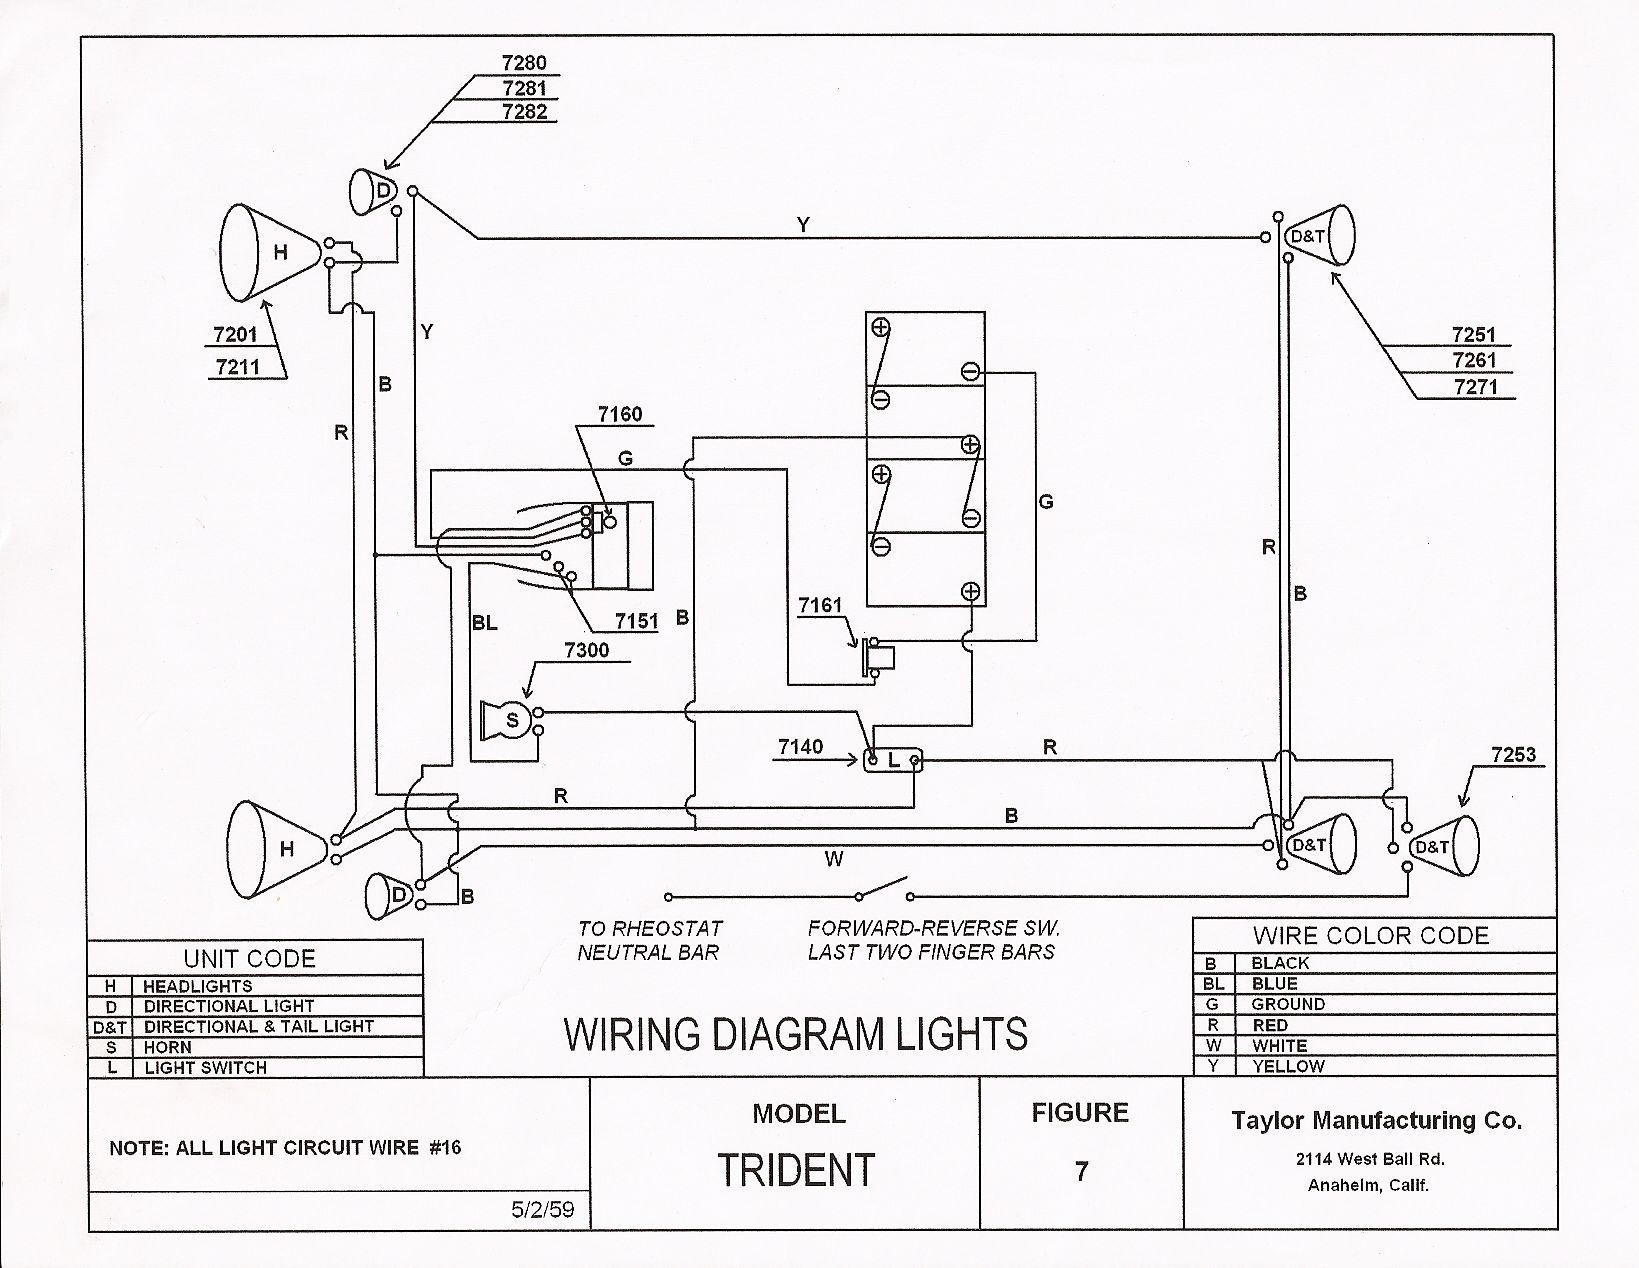 taylor dunn 36 volt wiring diagram | free wiring diagram typical golf cart wiring diagram pargo golf cart wiring diagram